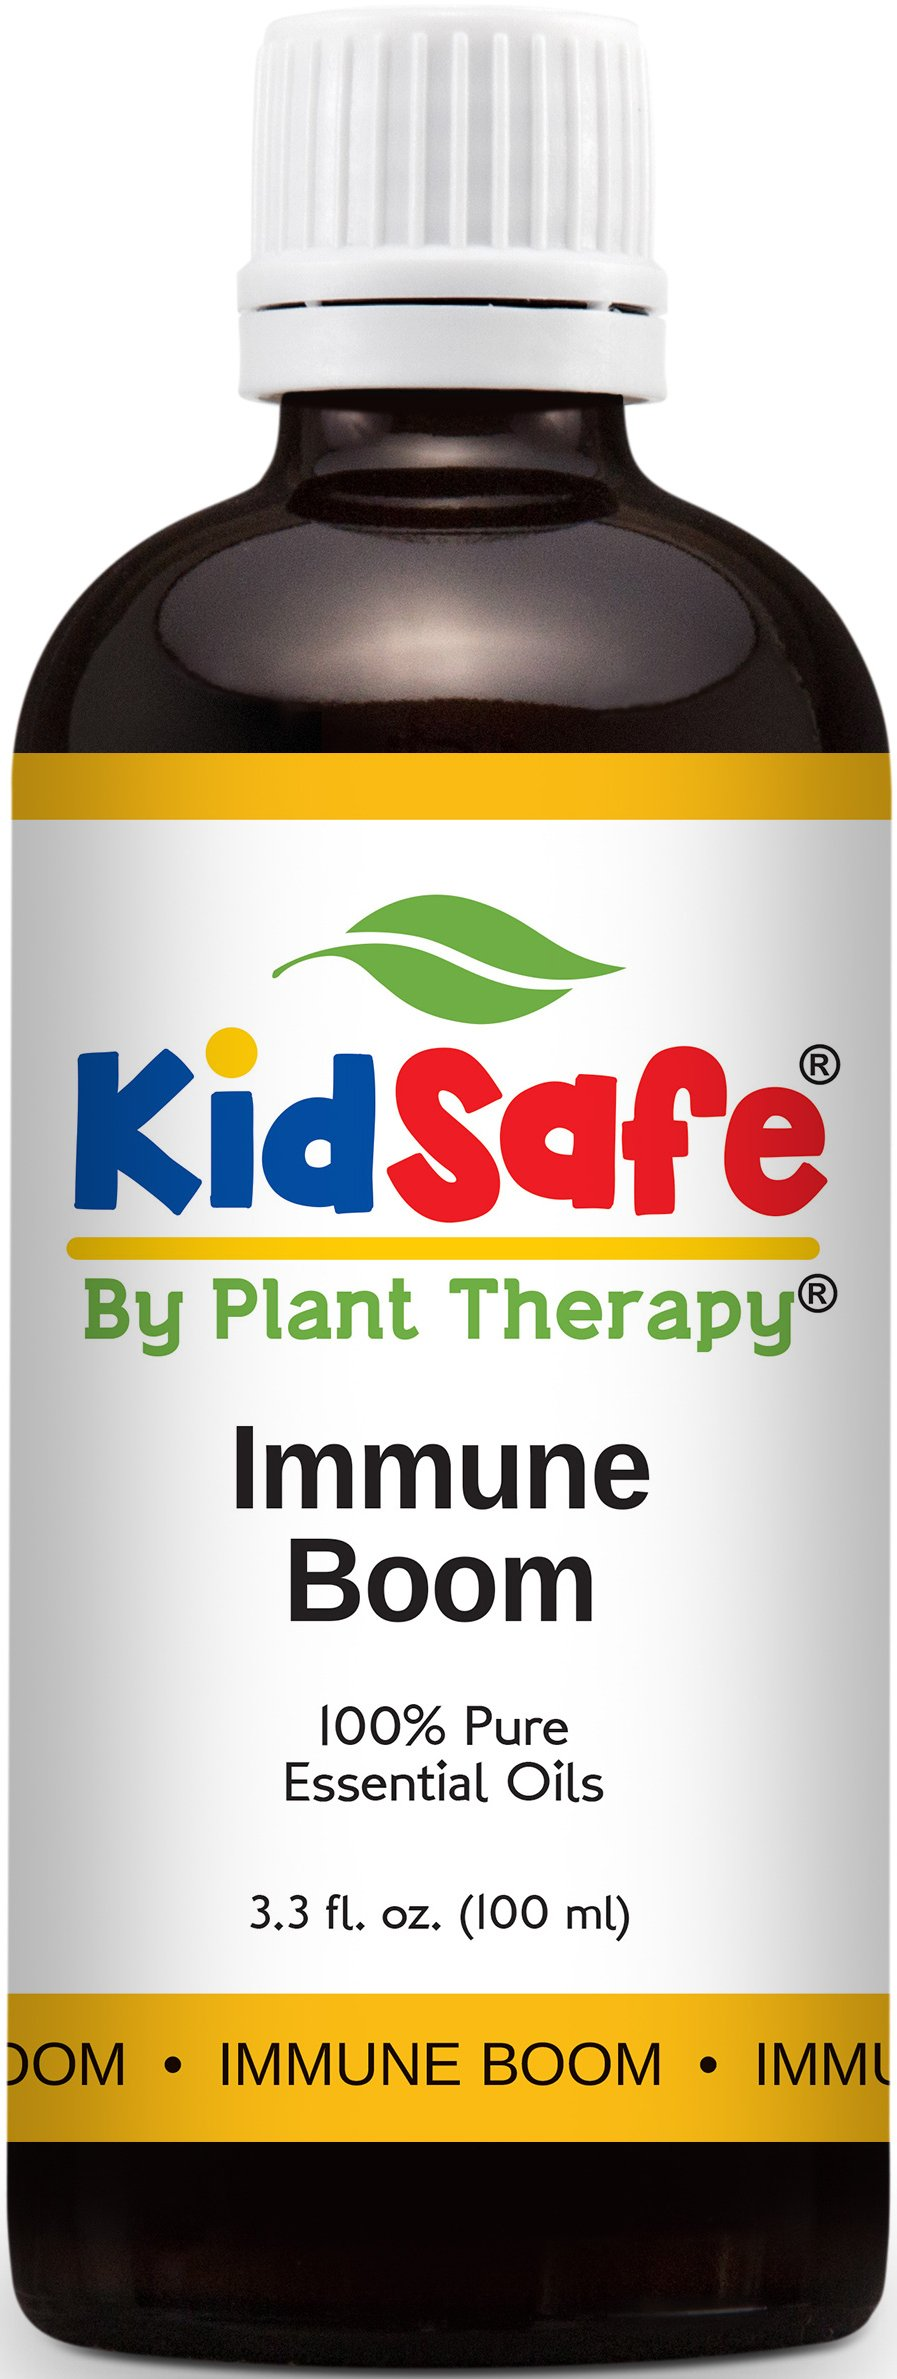 Plant Therapy KidSafe Immune Boom Synergy Essential Oil Blend. Blend of: Lemon, Palmarosa, Dill, Petitgrain, Copaiba and Frankincense Carteri. 100 mL (3.3 Ounce). by Plant Therapy